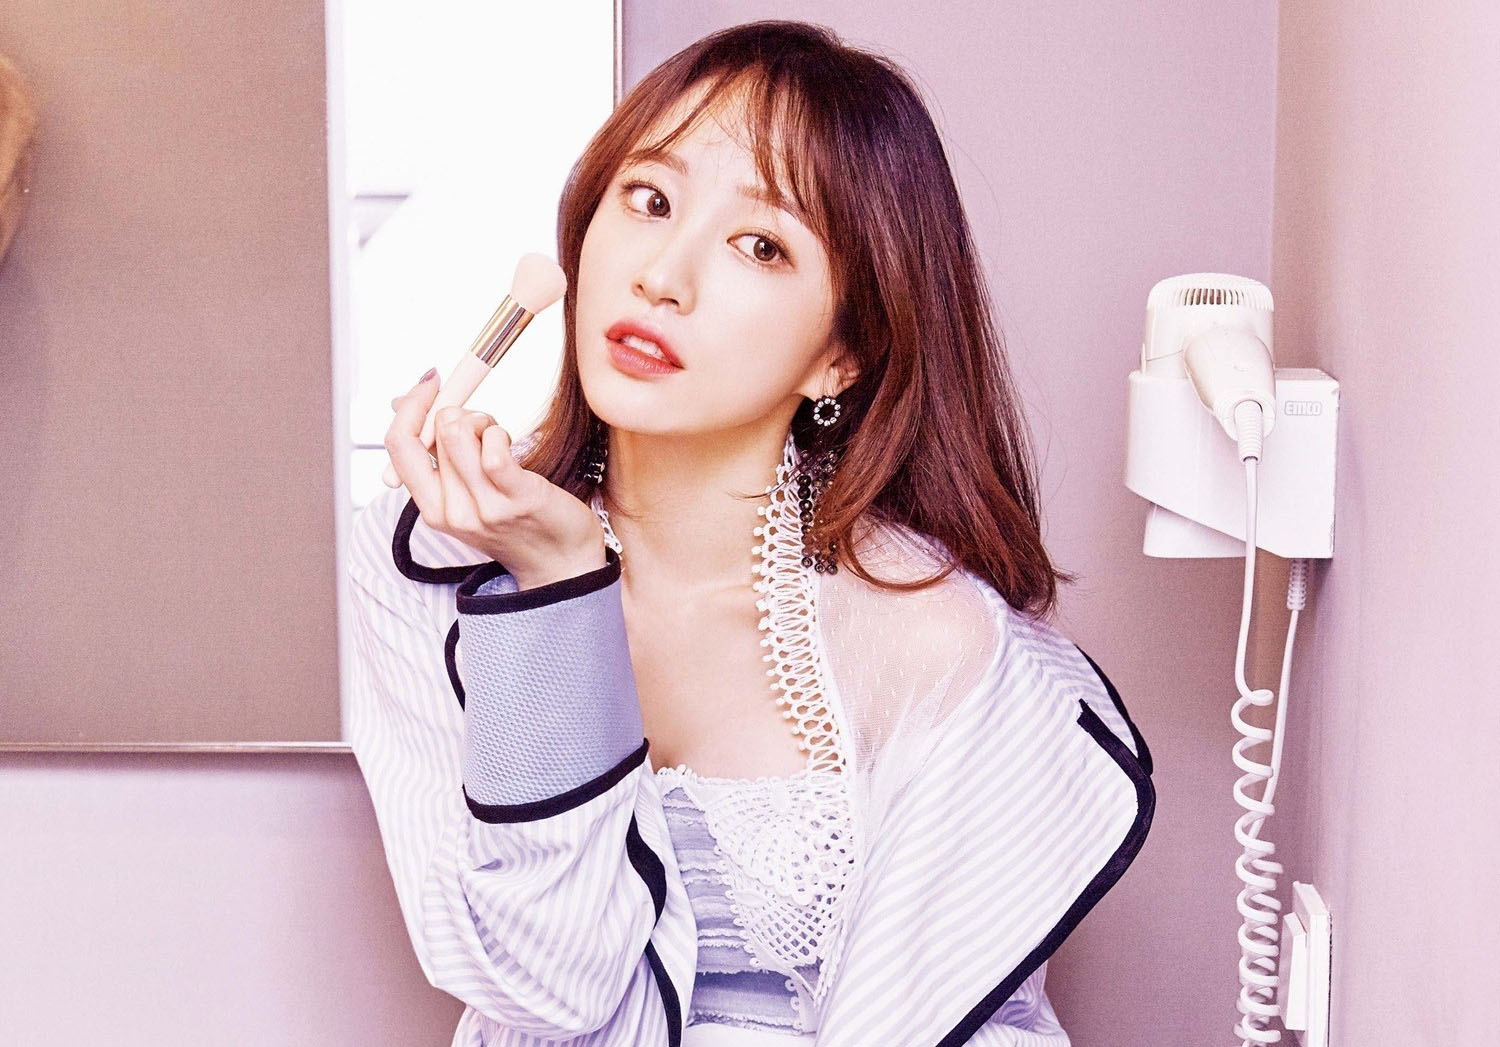 EXID's Hani On Her Own Dancing And The Fancam That Made Her A Viral Hit